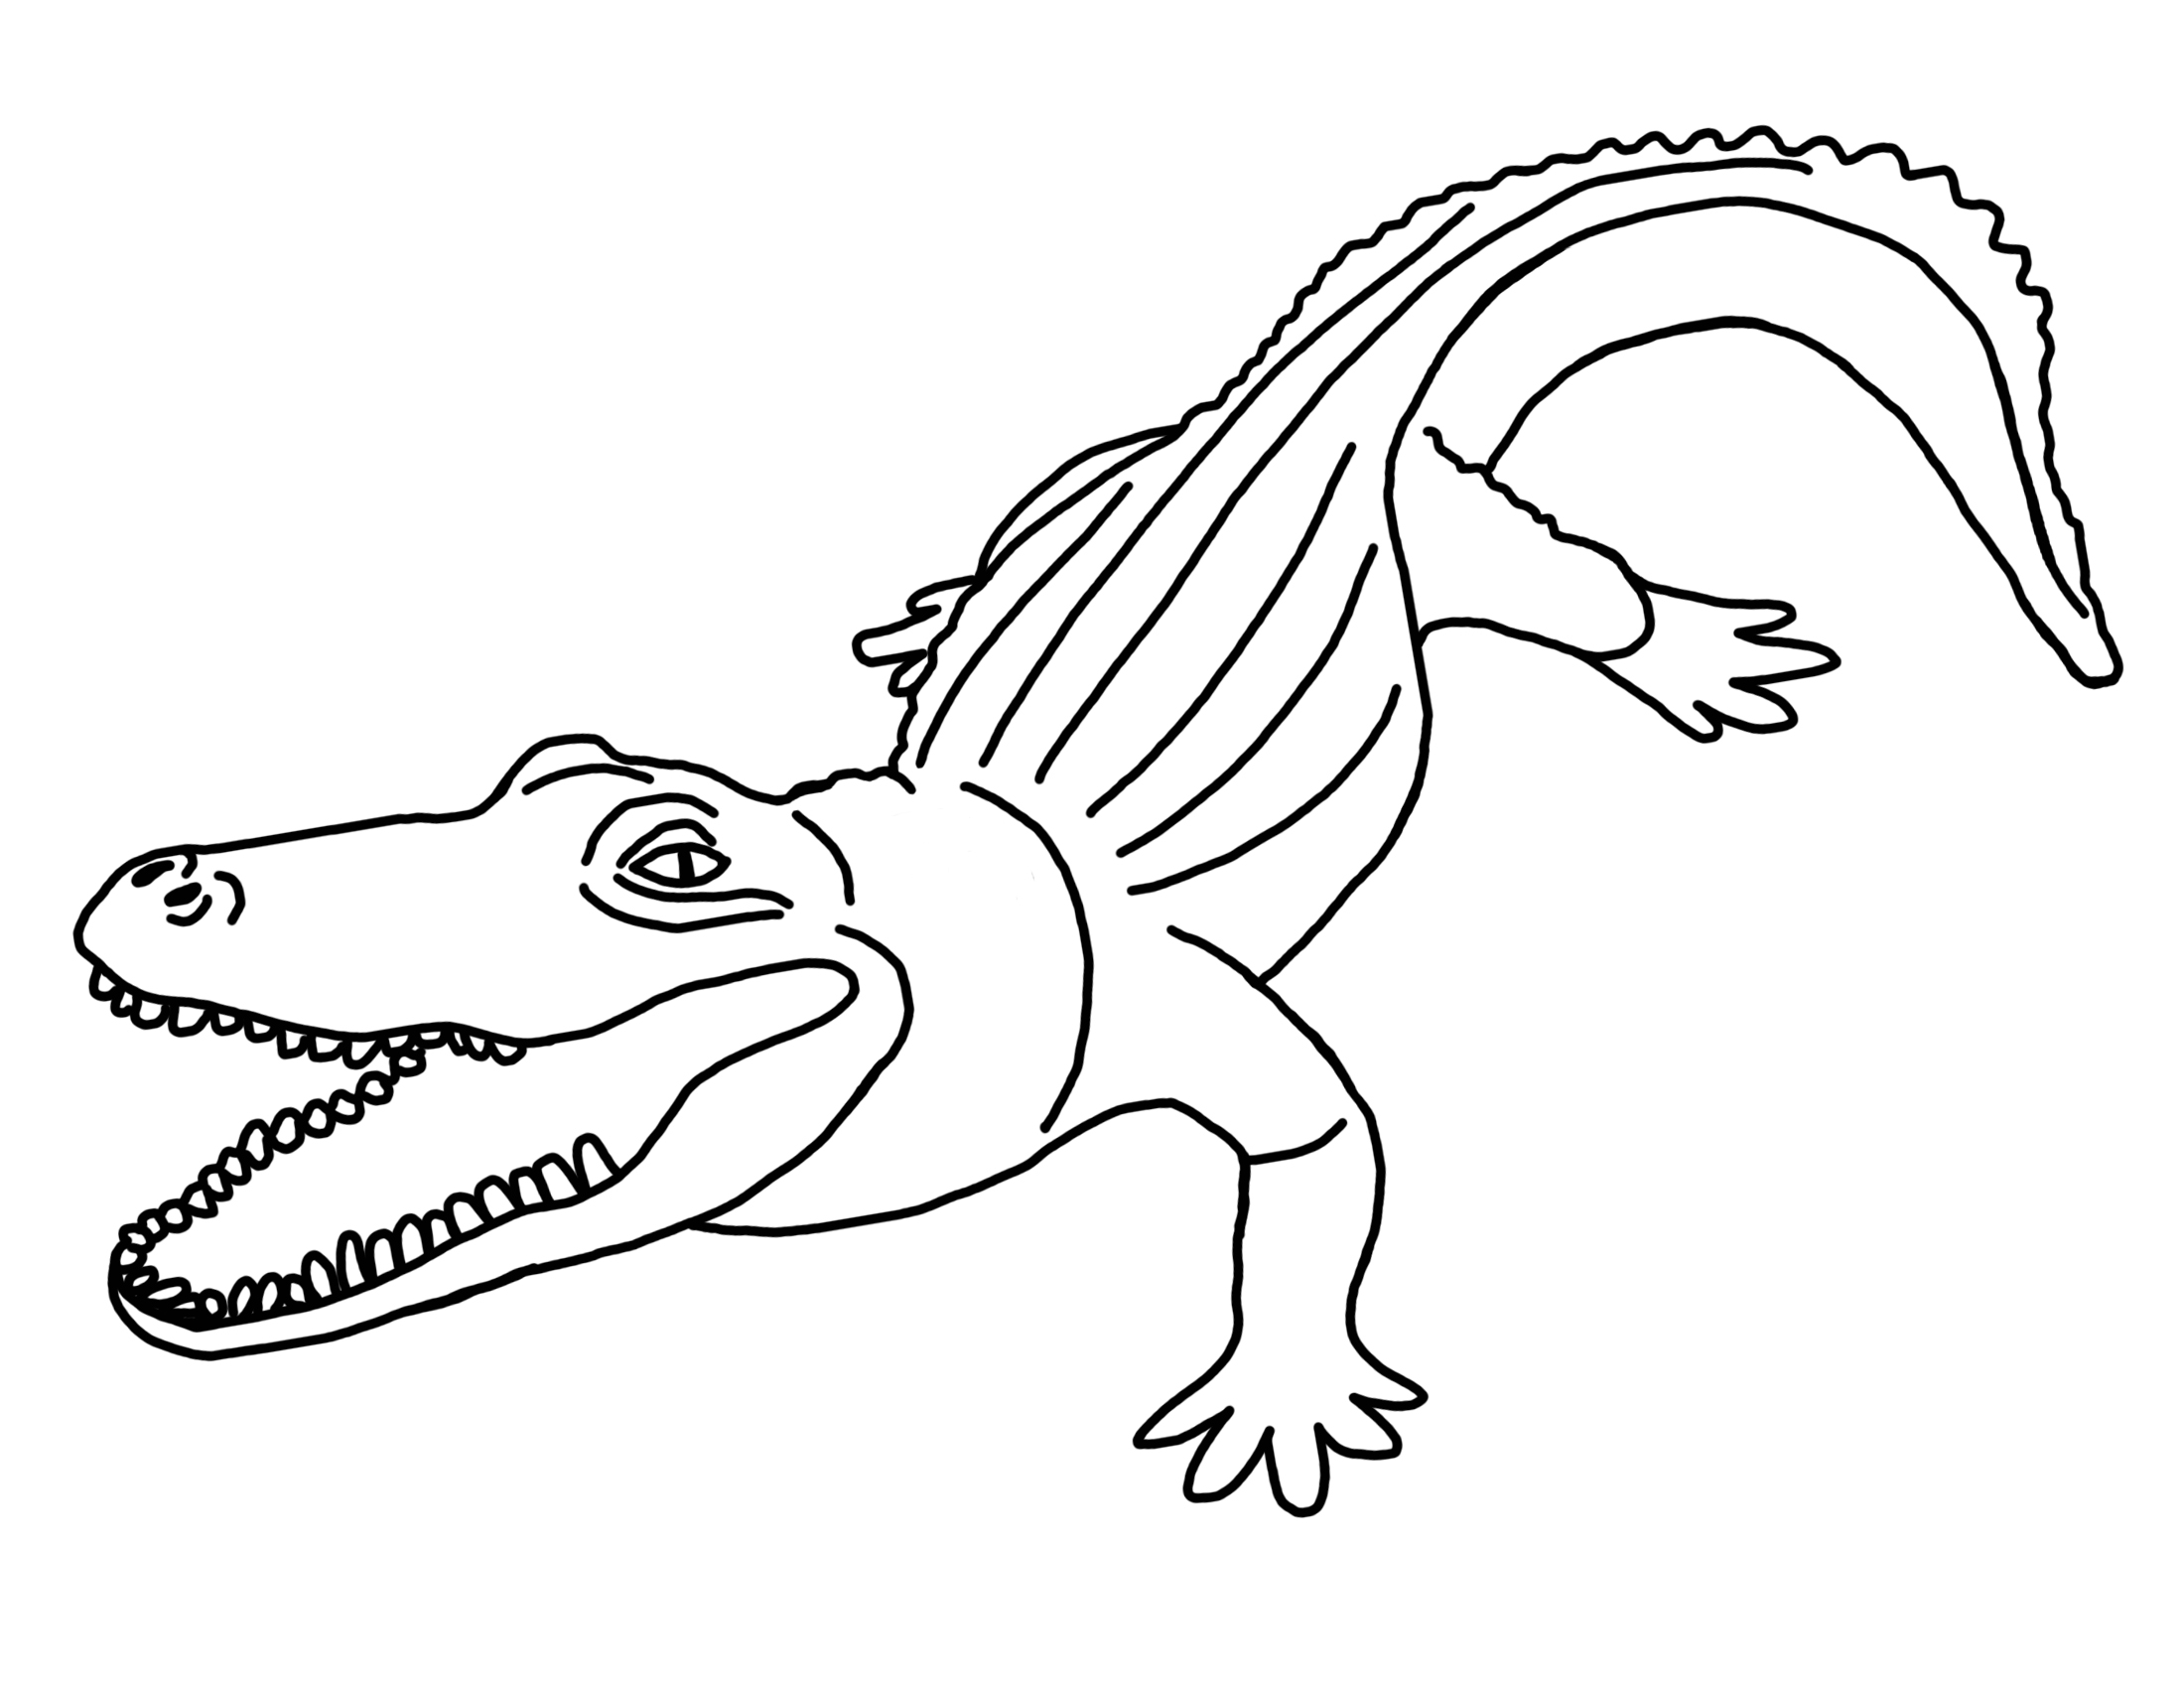 Letter A Alligator Coloring Pages. alligator coloring sheets ...